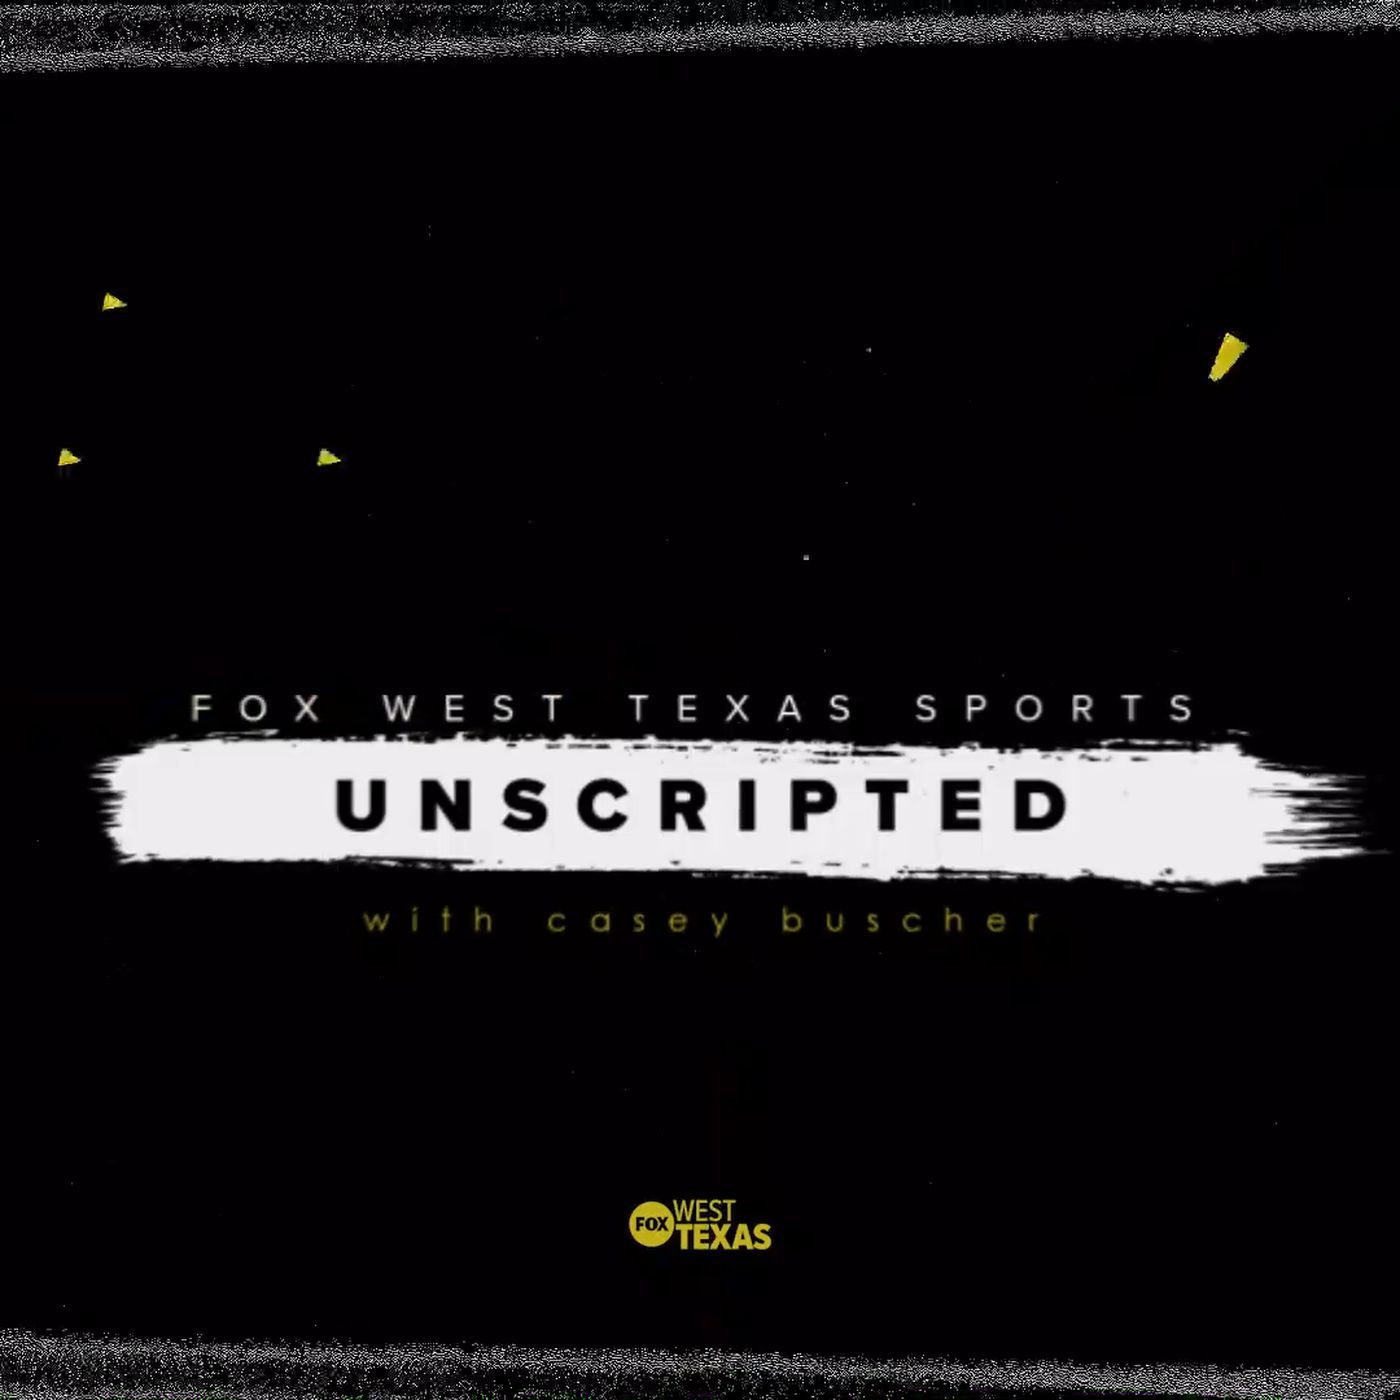 FOX West Texas Sports: Unscripted